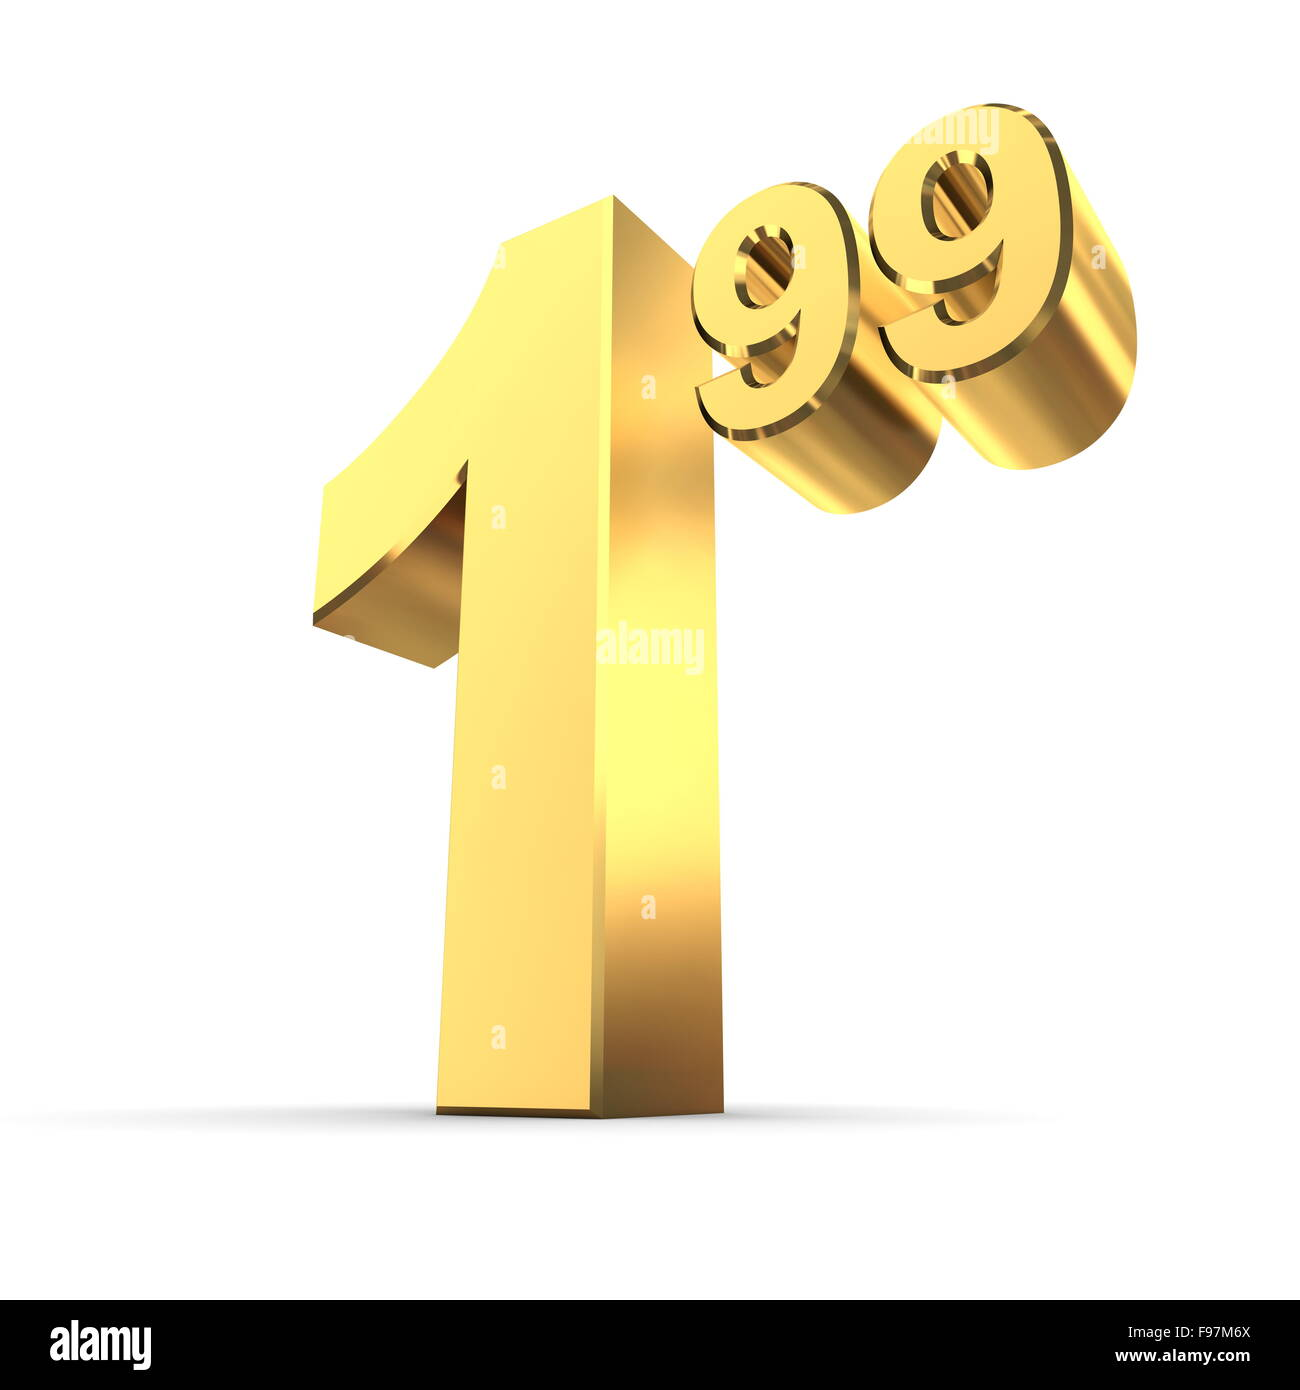 Solid Price Tag Number 1 99 - Shiny Gold Stock Photo